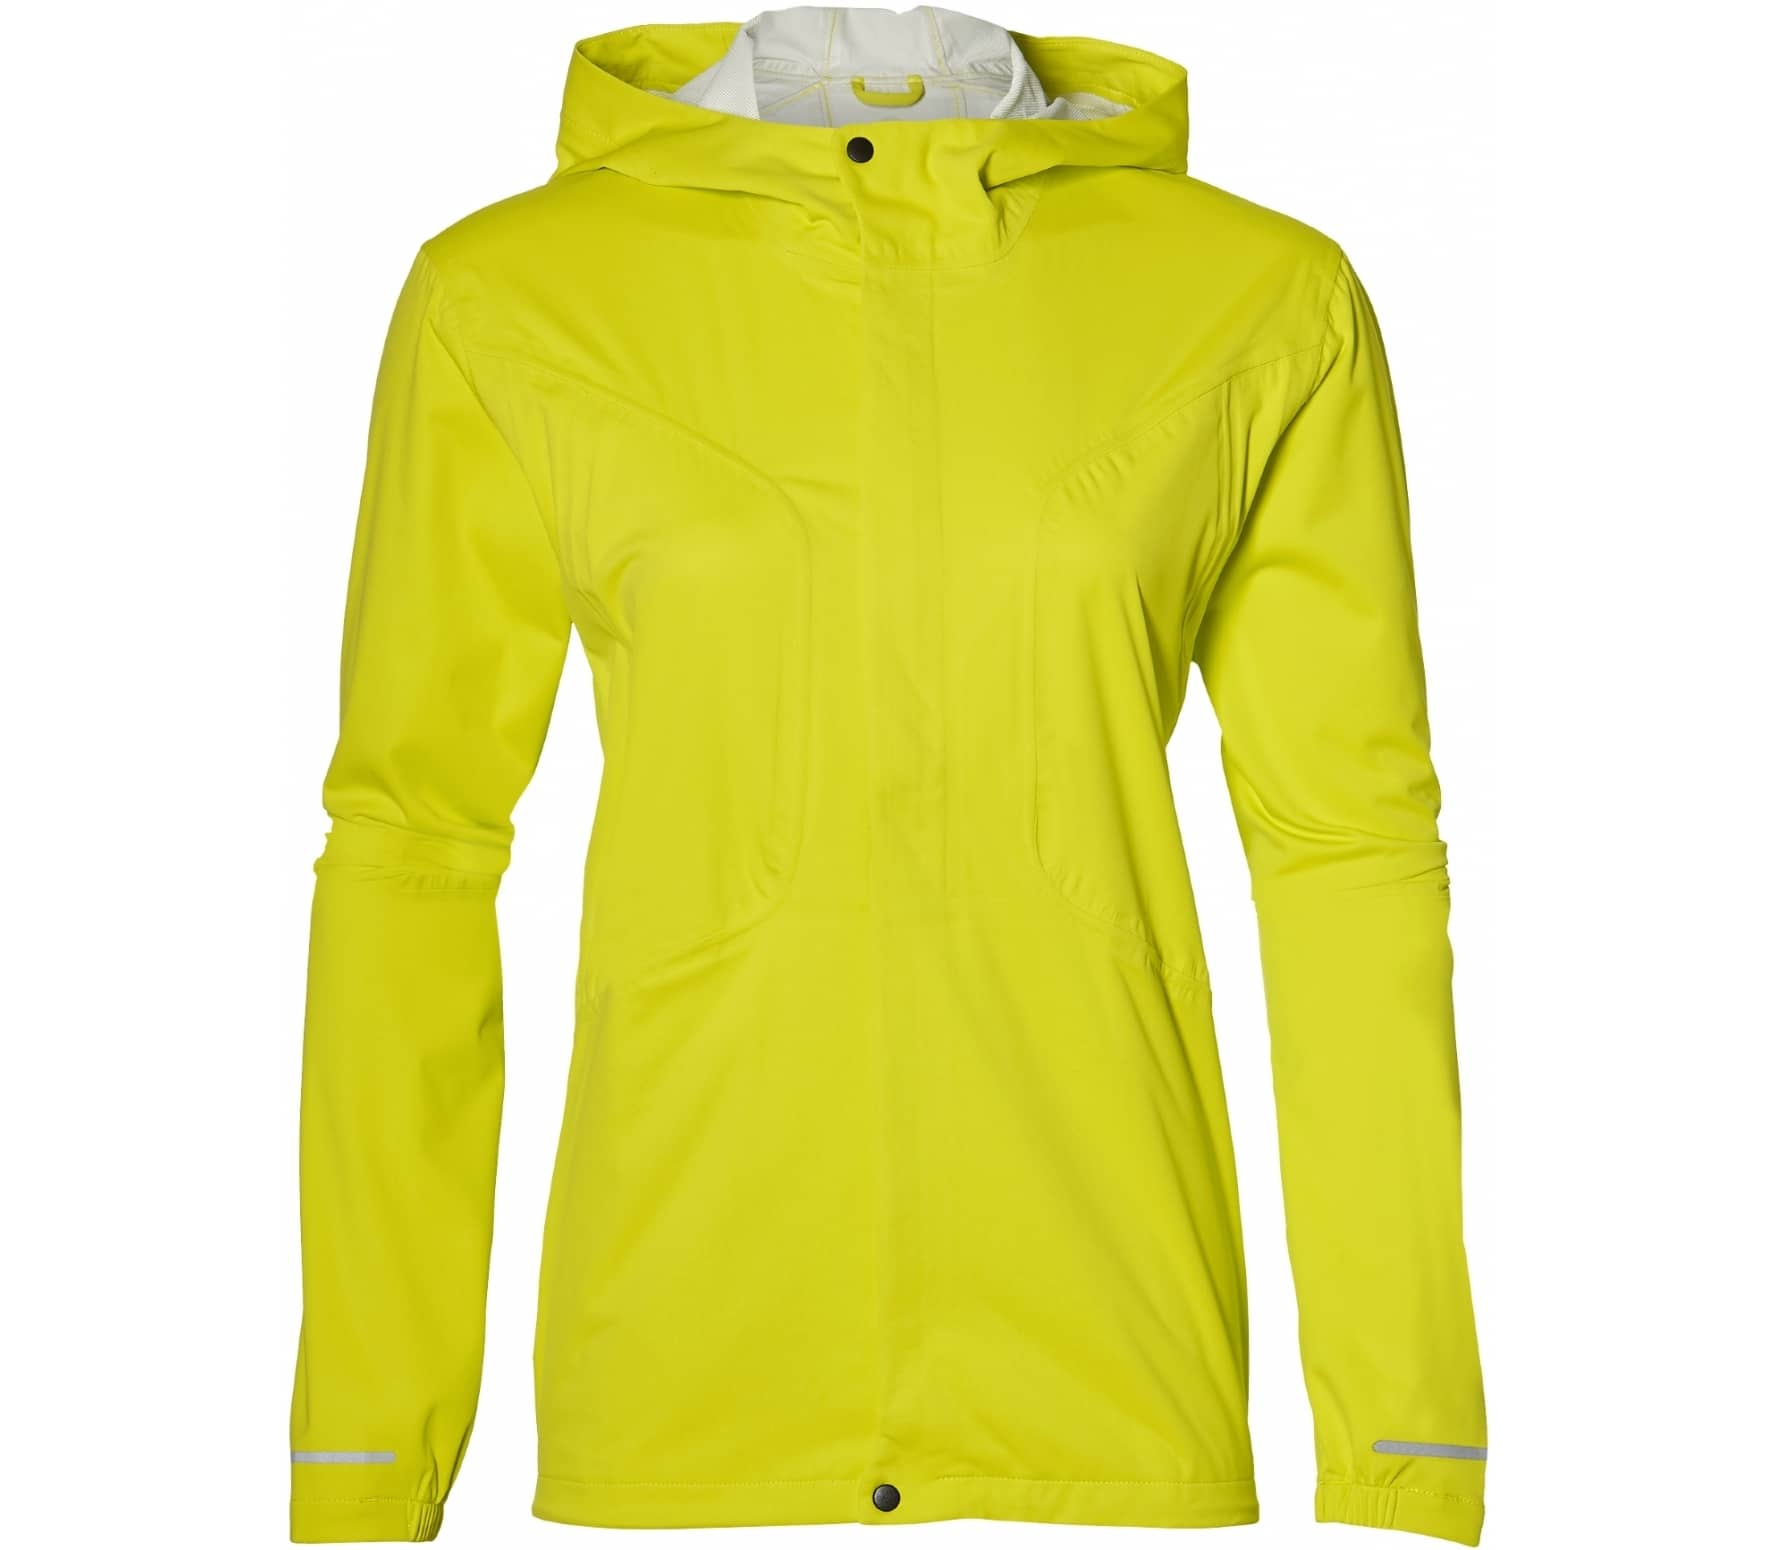 ASICS - Accelerate men's running jacket (yellow) - XXL thumbnail